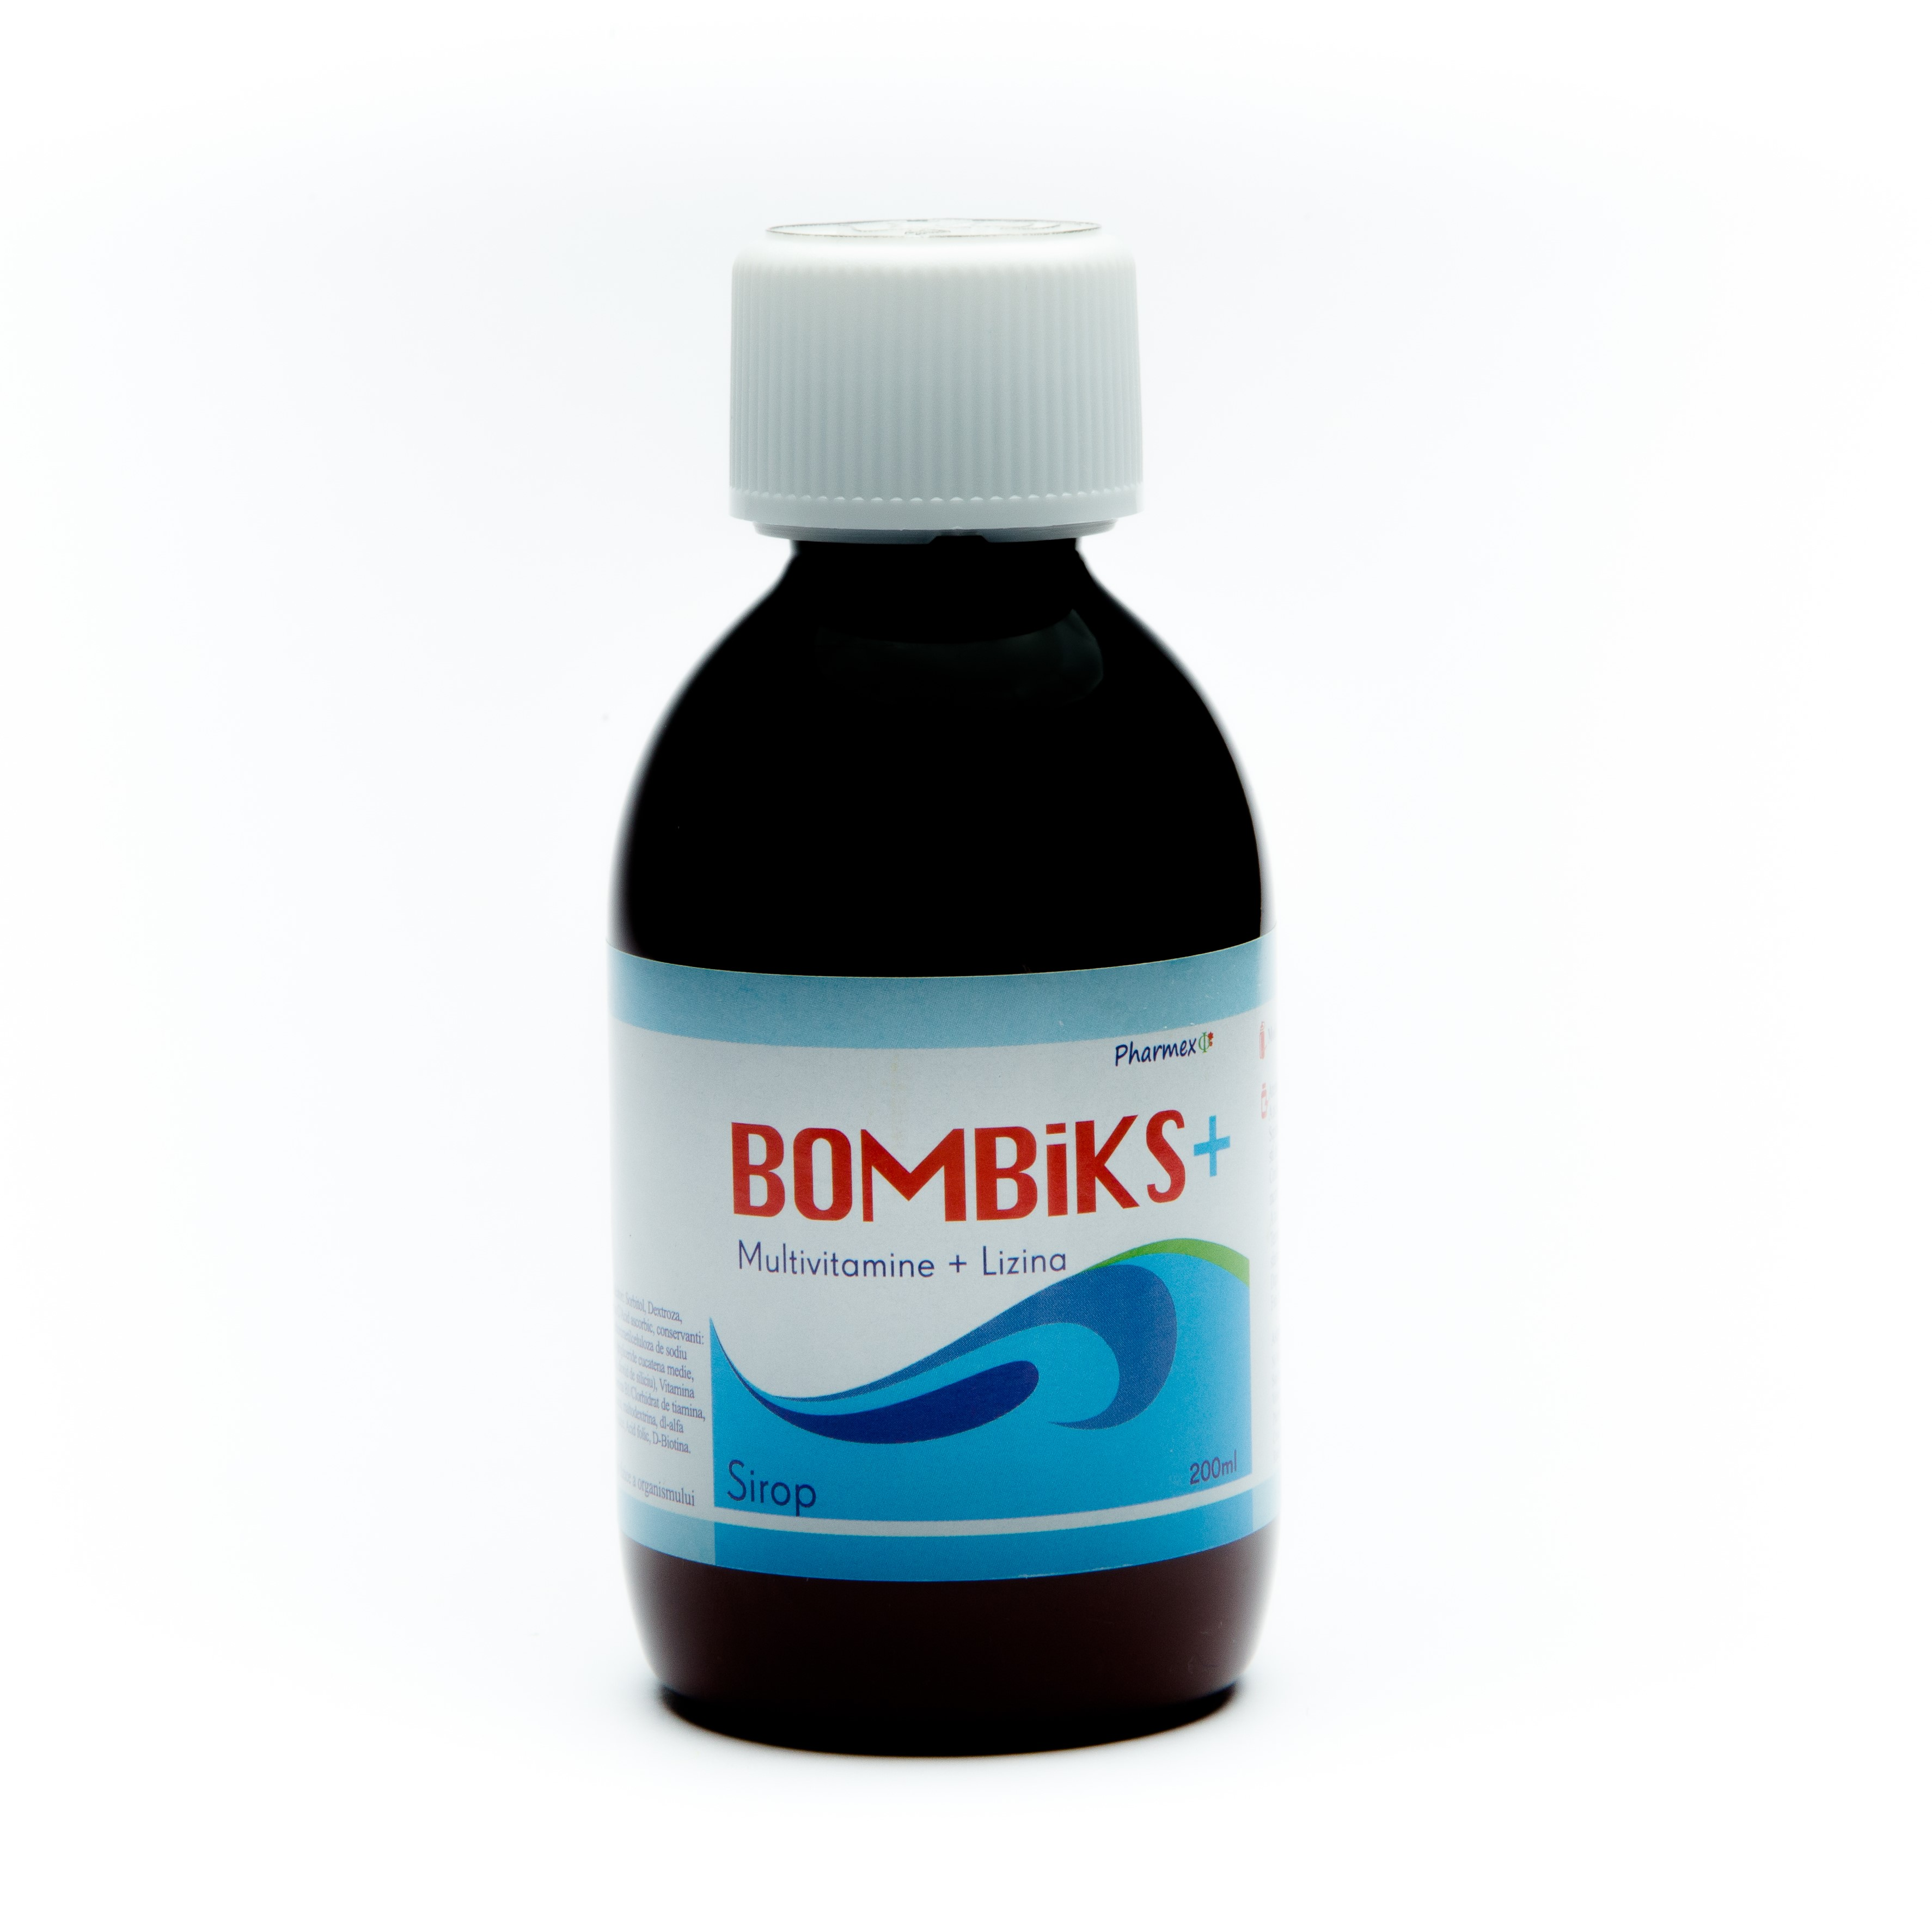 Bombiks+ Sirop, 200 ml, Pharmex